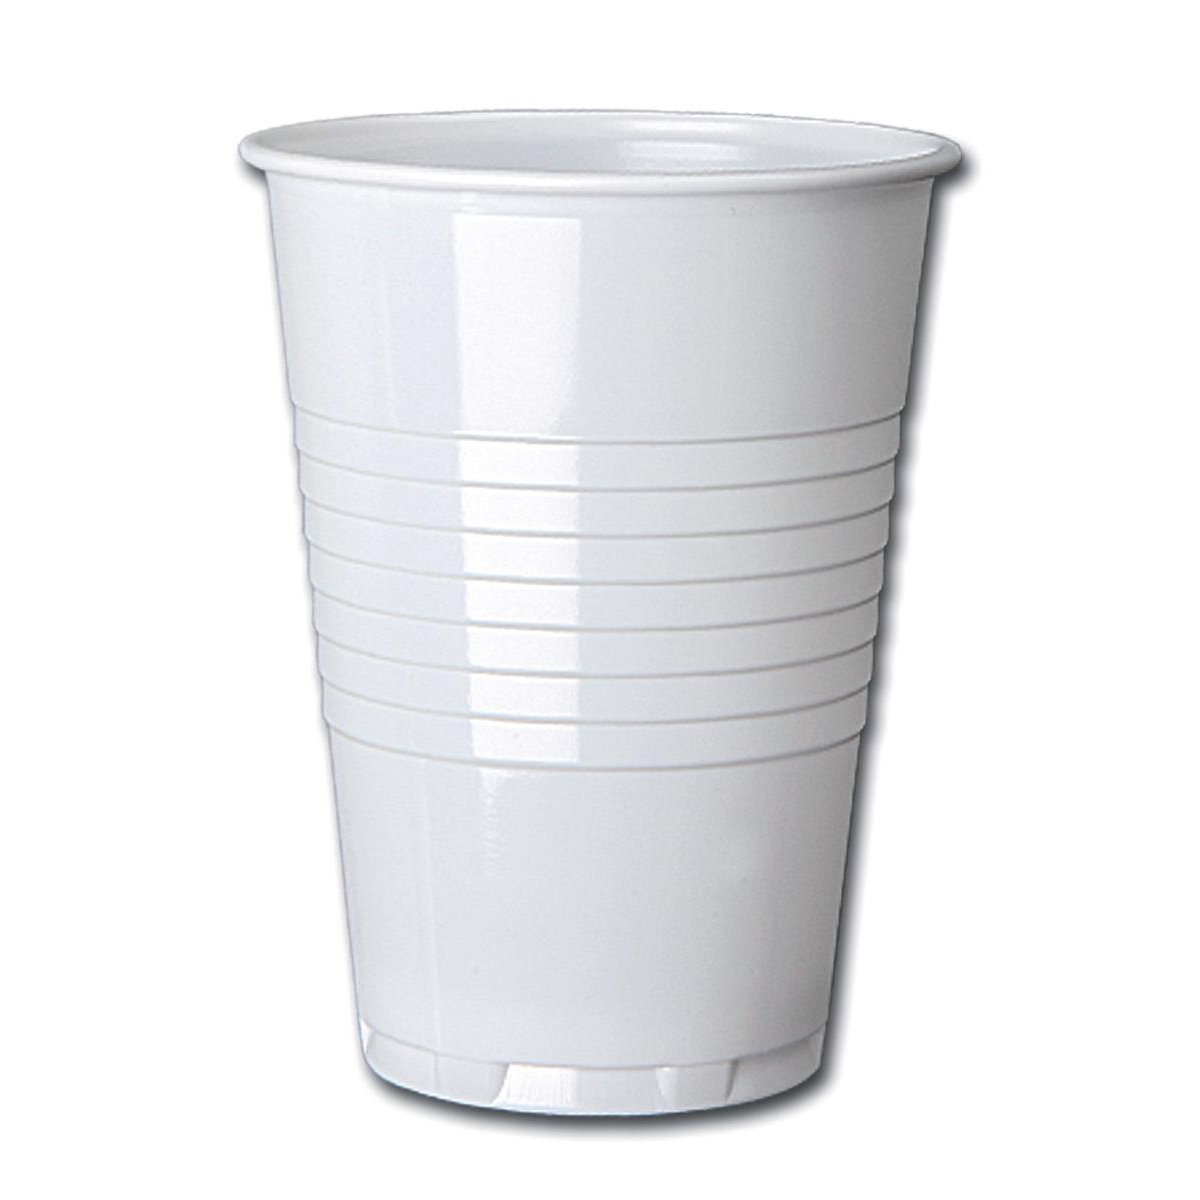 Cup for Hot Drinks Plastic for Vending Machine 7oz 207ml Tall Ref 0510039 Pack 100